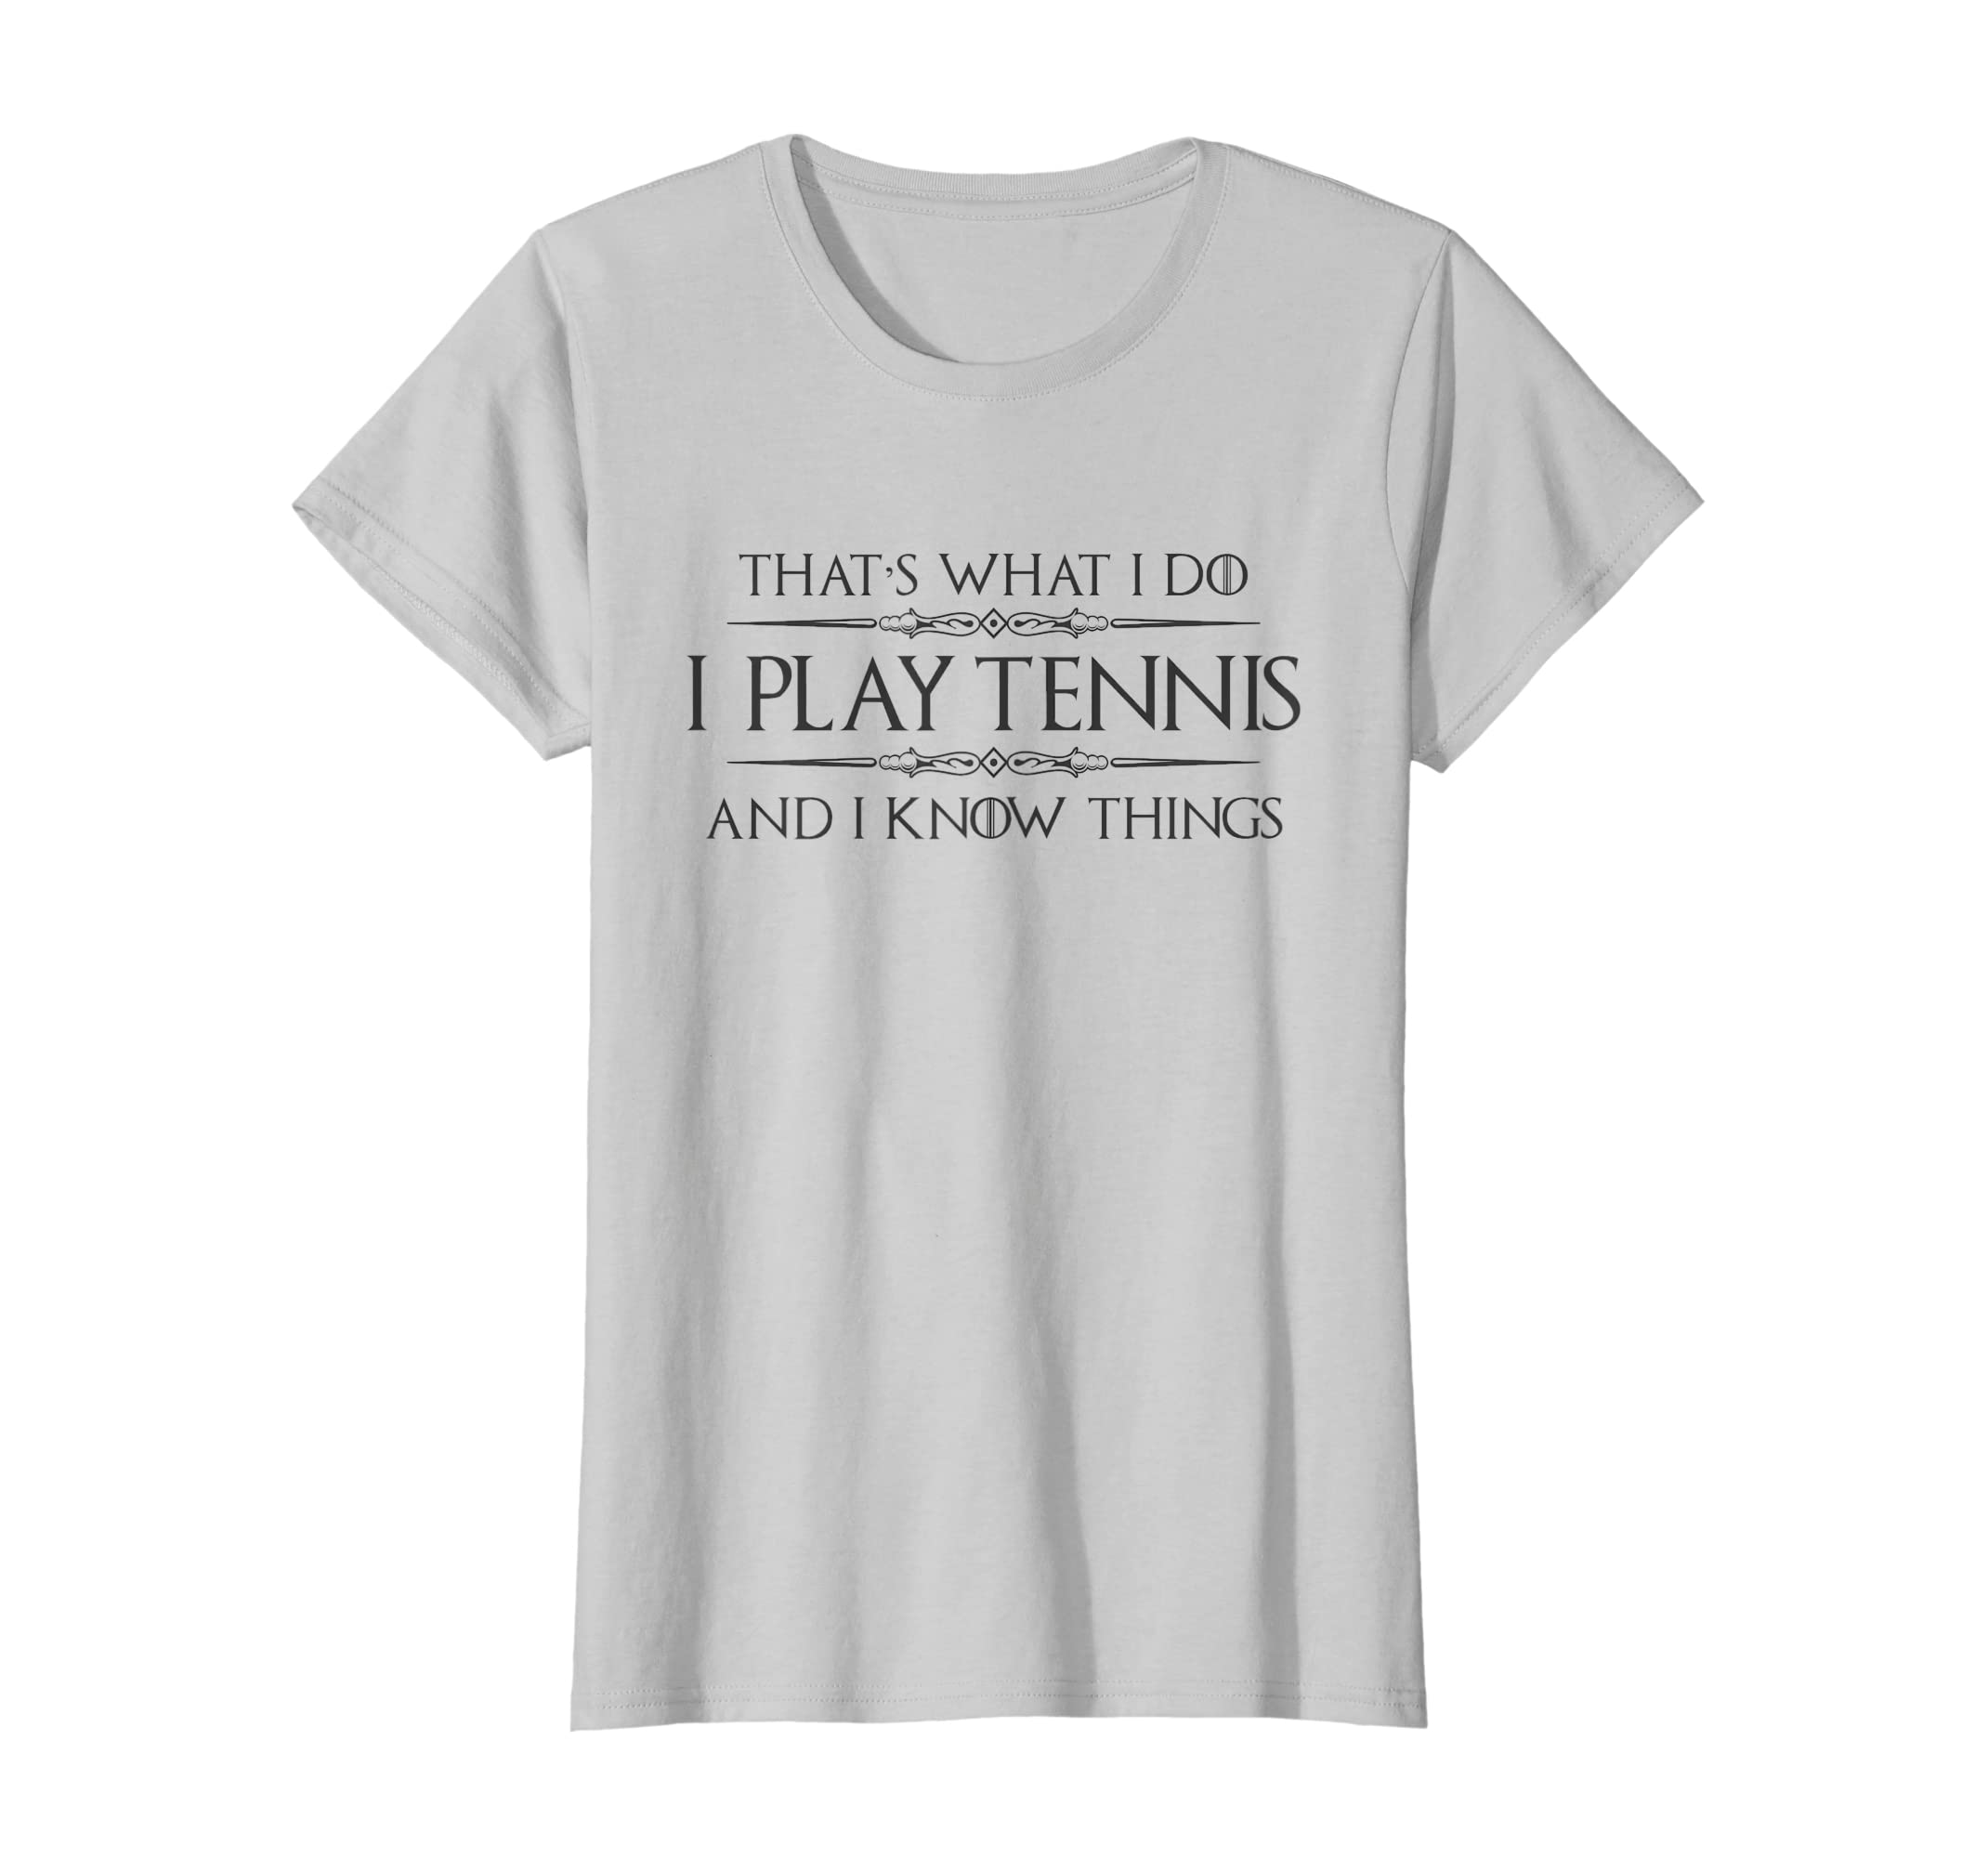 2bc381f19a0 Amazon.com  Tennis Player Shirt - Funny I Play Tennis   I Know Things   Clothing